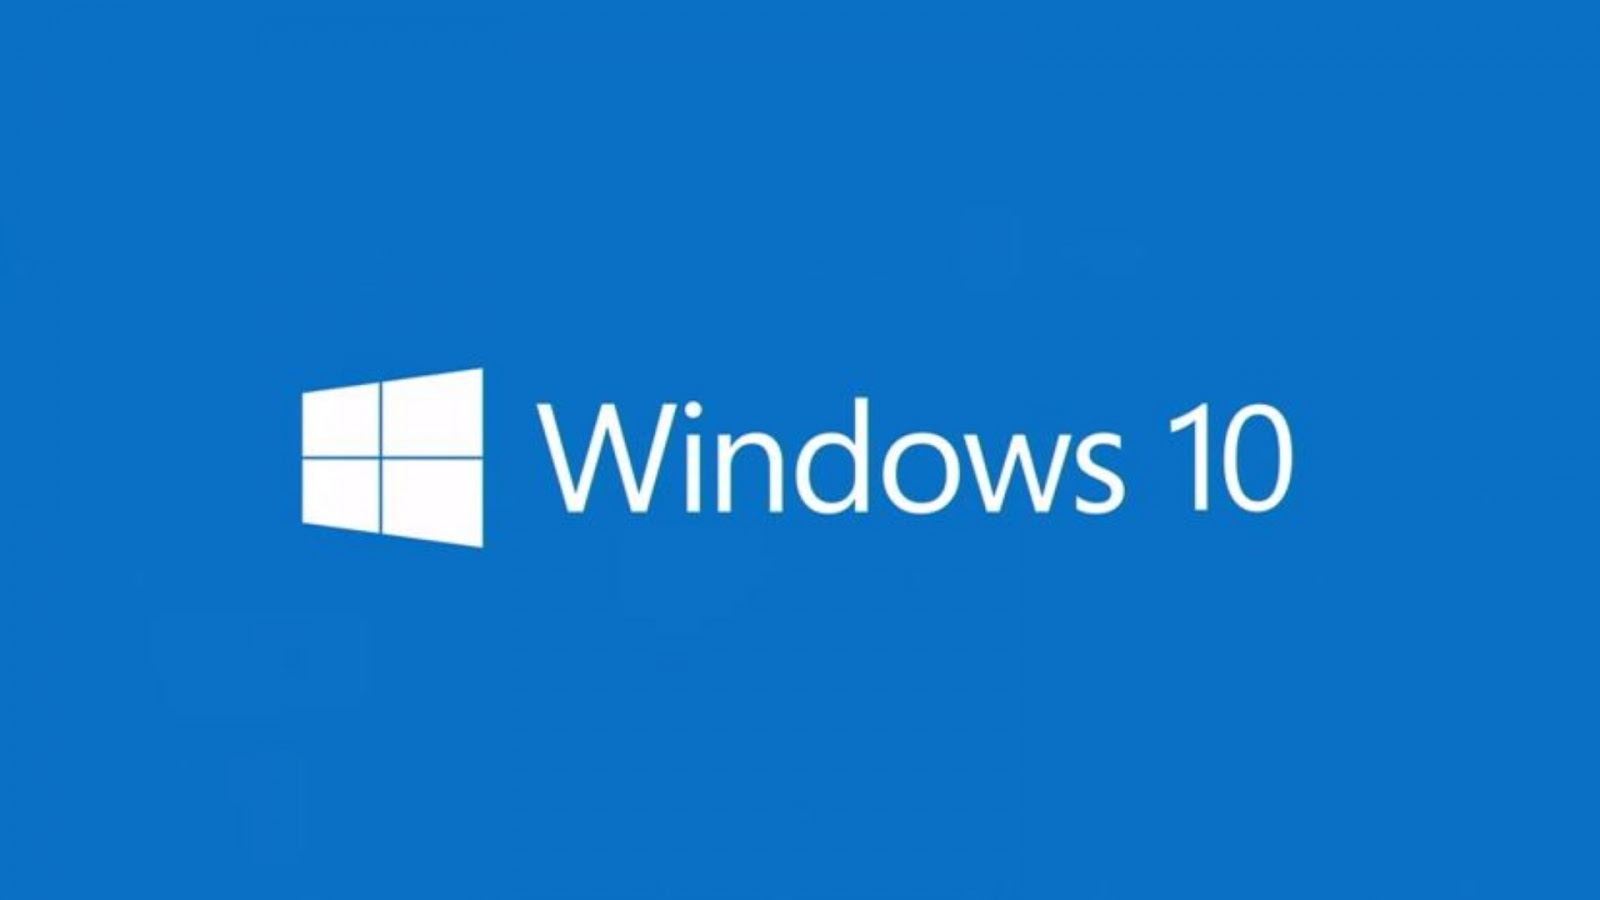 Активируем любой Windows без проблем